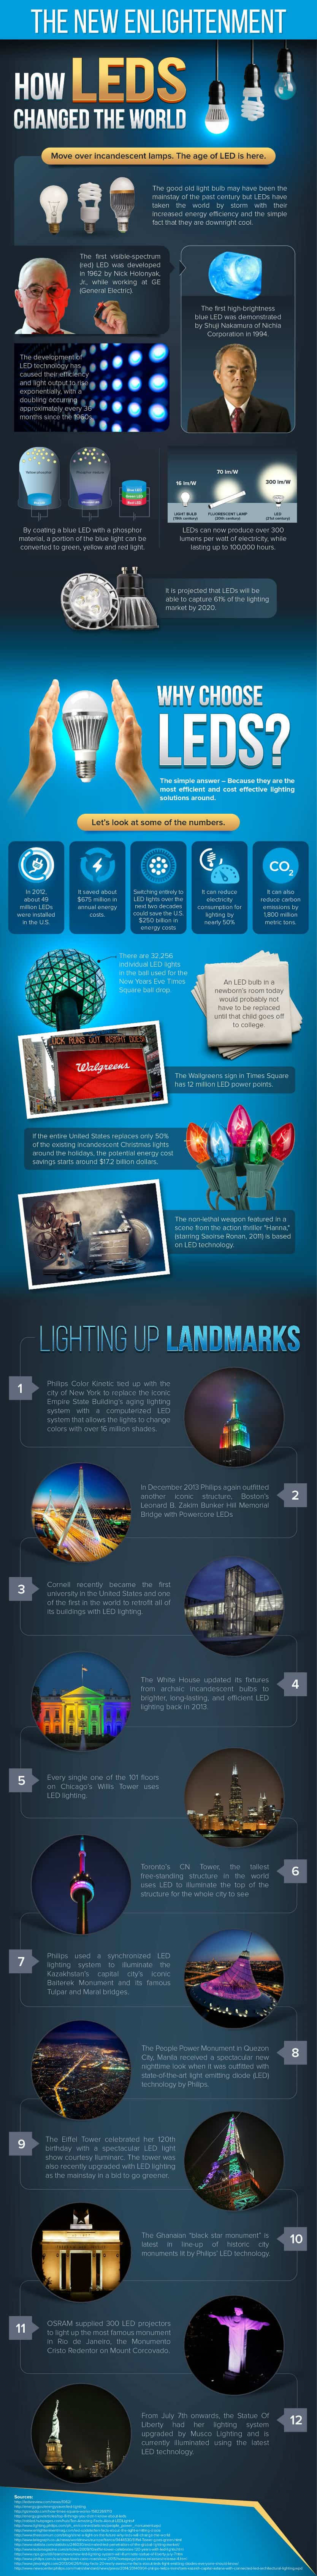 LED Infographic1 r50 - Using LED Lighting to Make a Sensual Environment for your Bachelor Pad